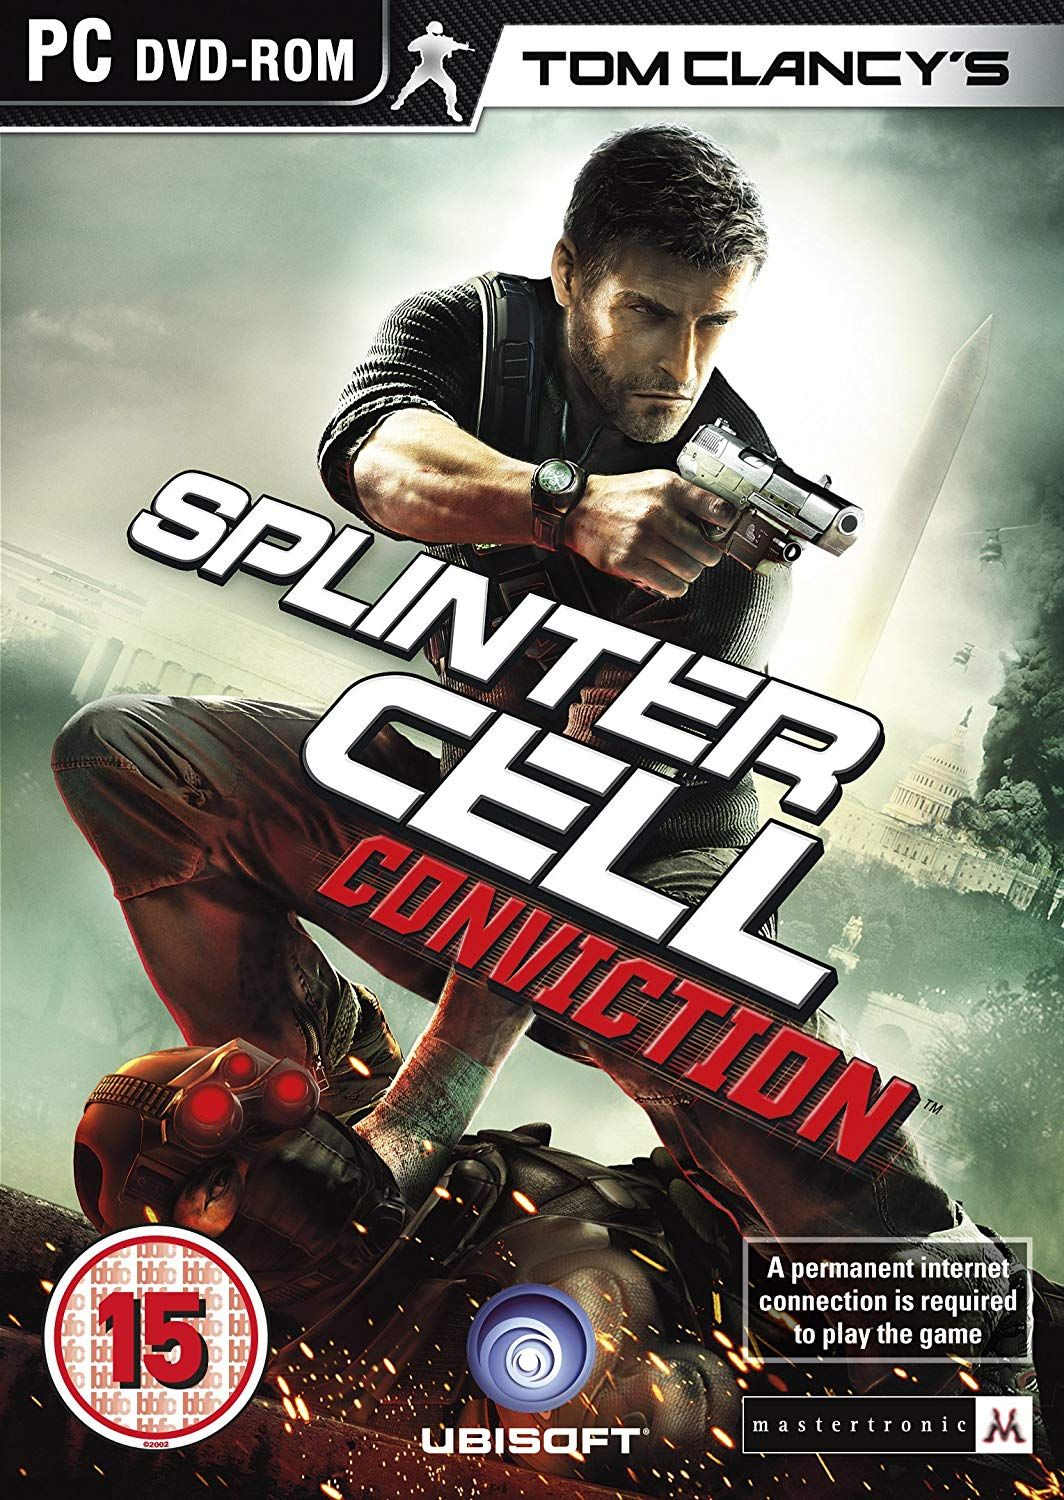 Pin by Torrent games for PC on Affari da gamer   Tom clancy's